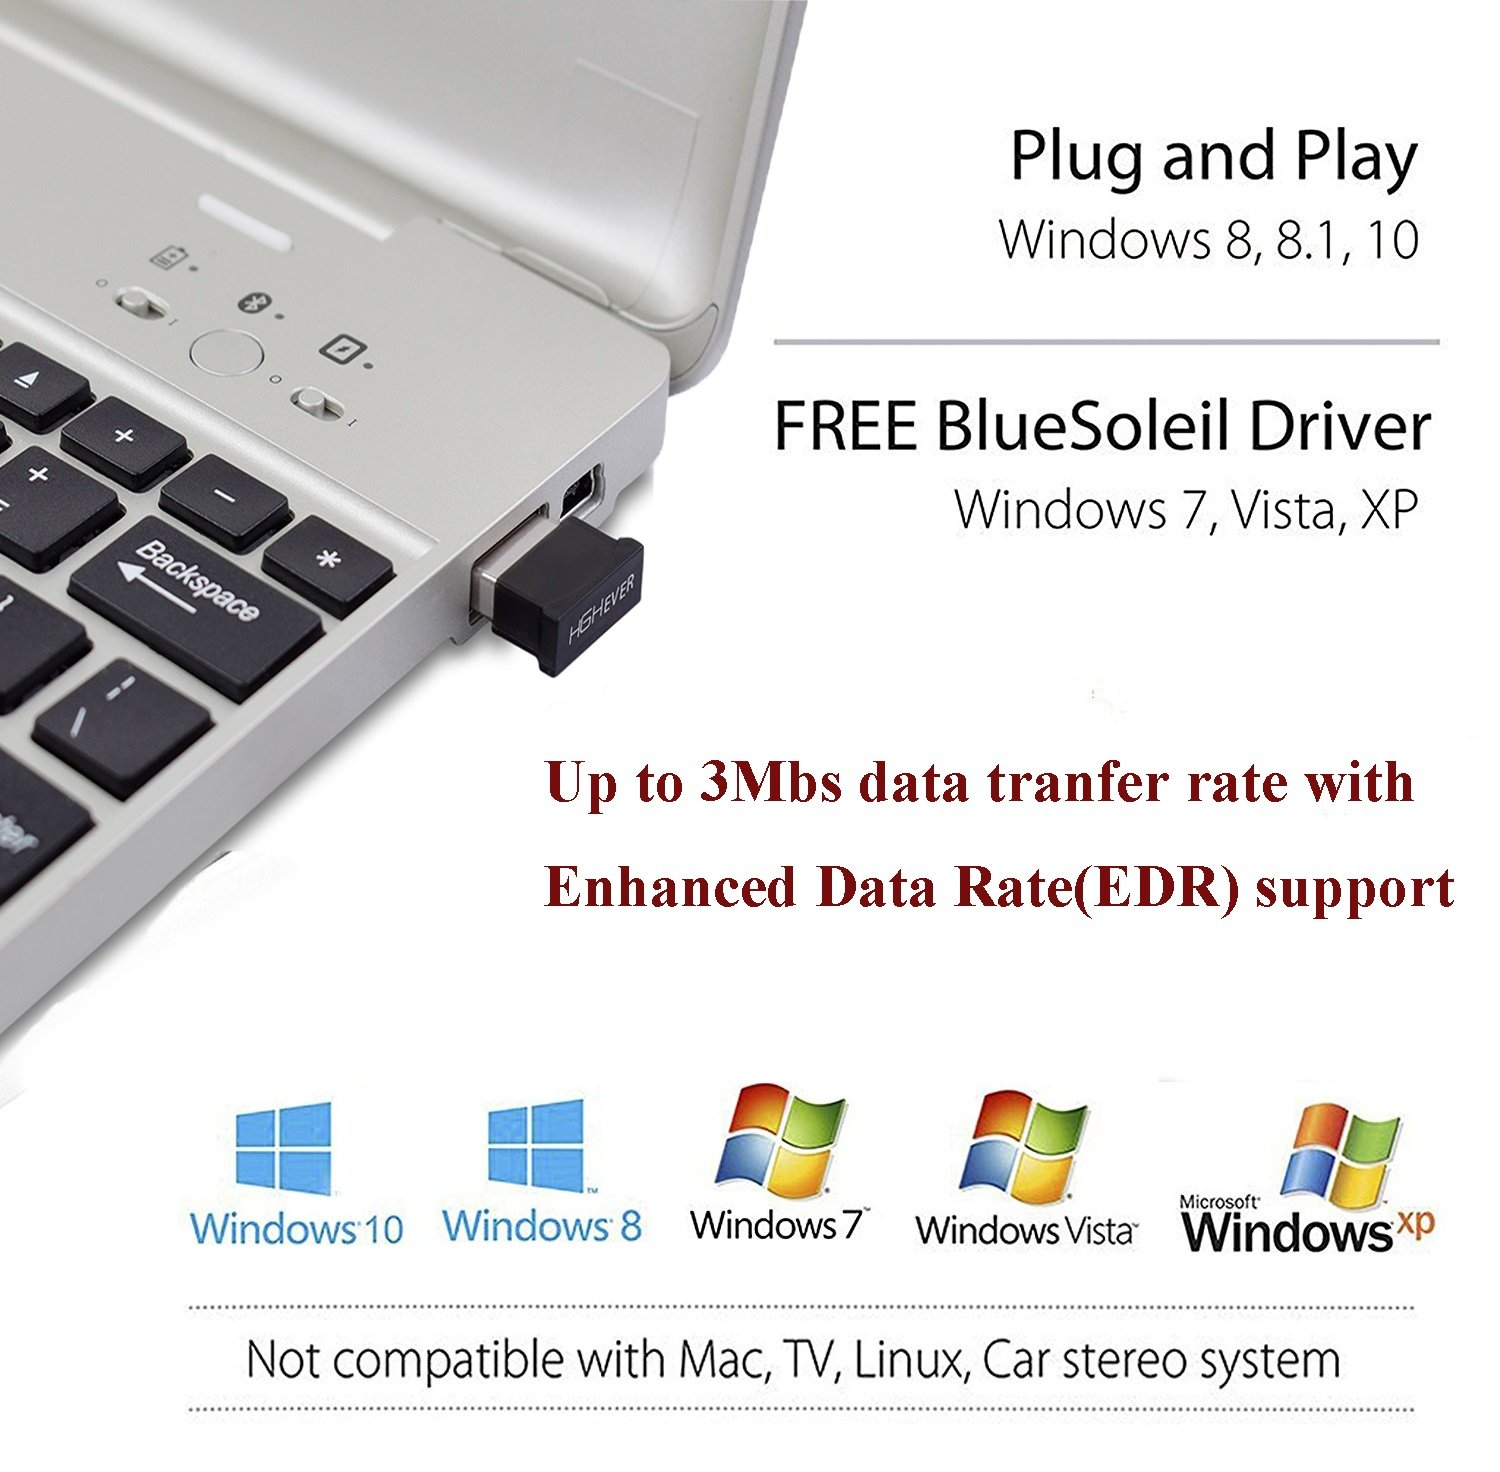 Bluetooth USB Adapter, 4.0 Bluetooth Low Energy 2.4Ghz Range Wireless USB Dongle Adapter for PC, Windows 10/8.1/8/7, Vista/XP by HIGHEVER (Image #3)